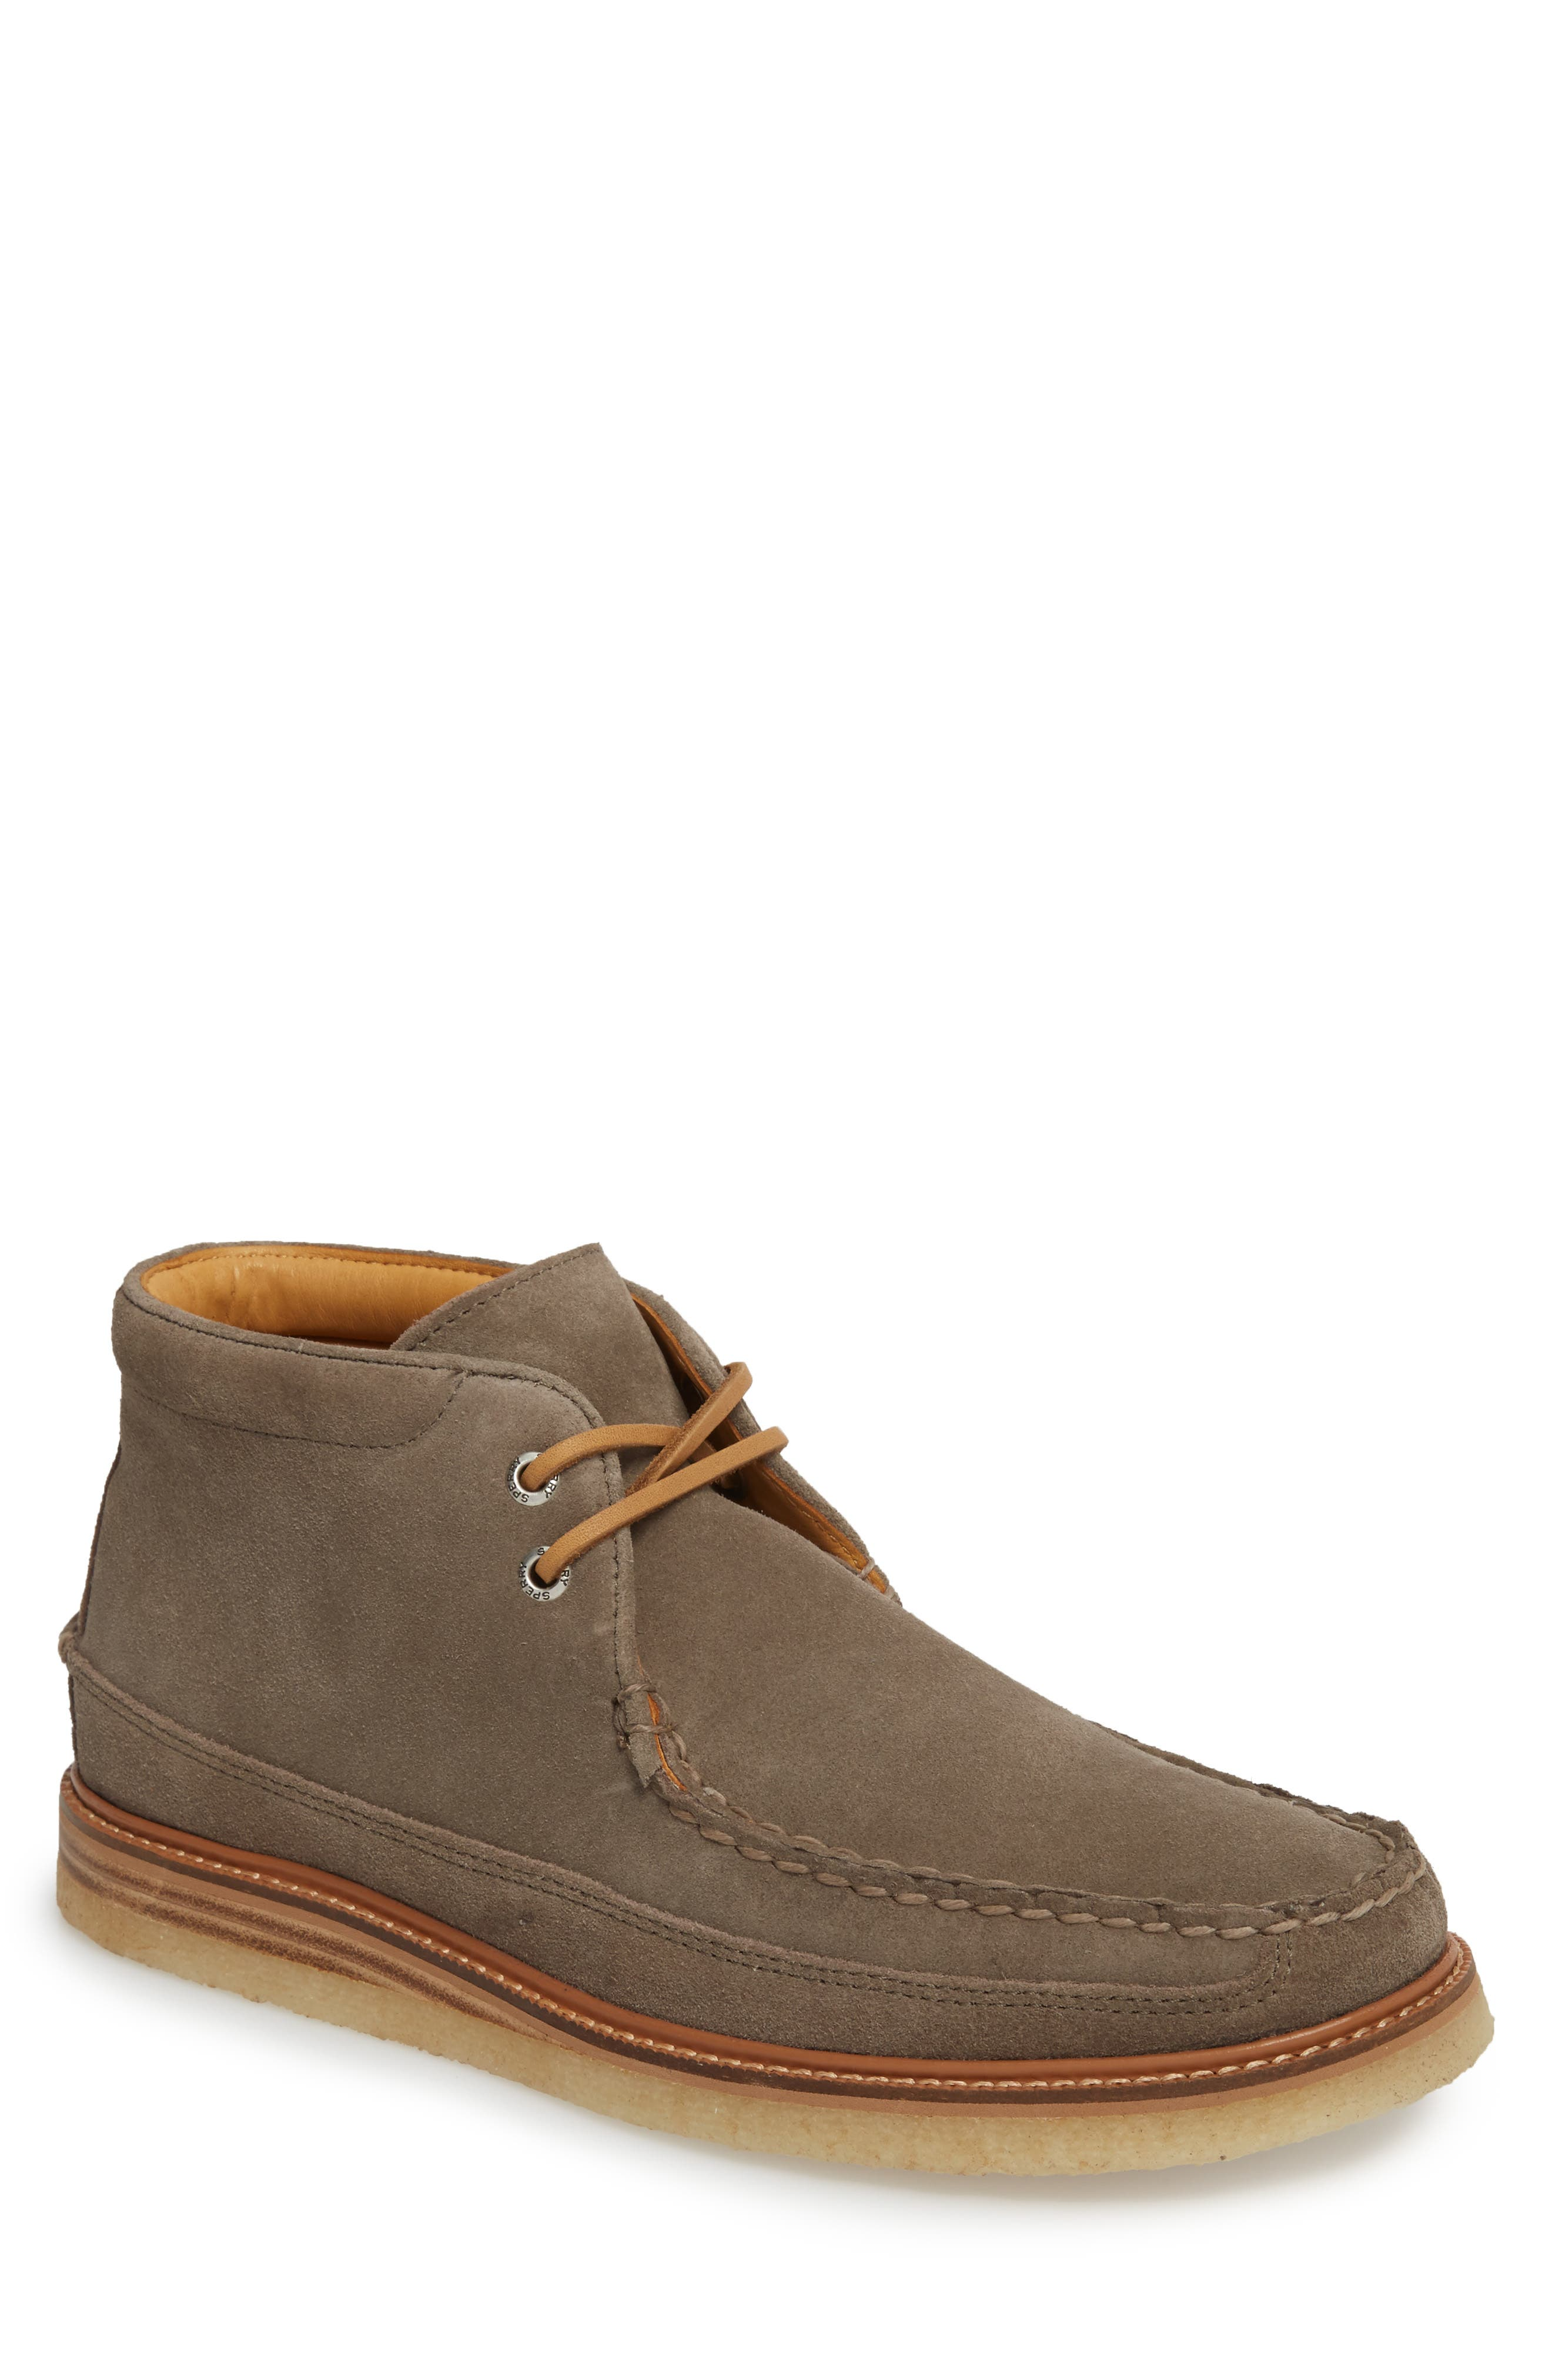 Gold Cup Chukka Boot,                             Main thumbnail 1, color,                             Taupe Grey Leather/ Suede